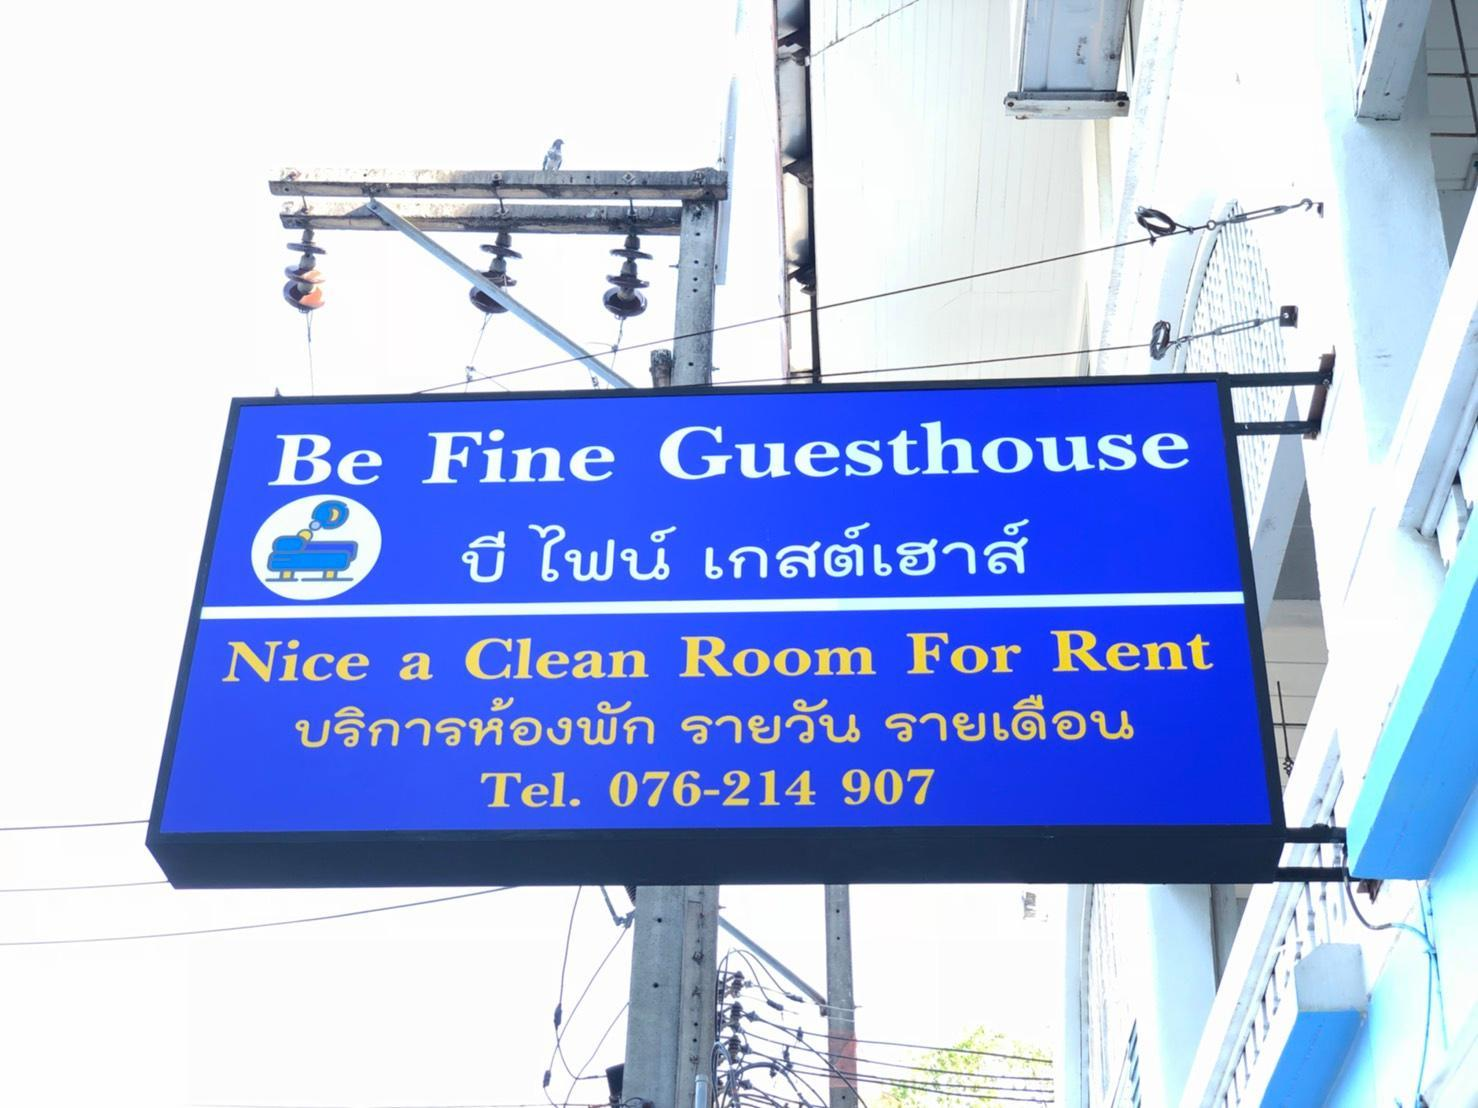 Be Fine Guesthouse